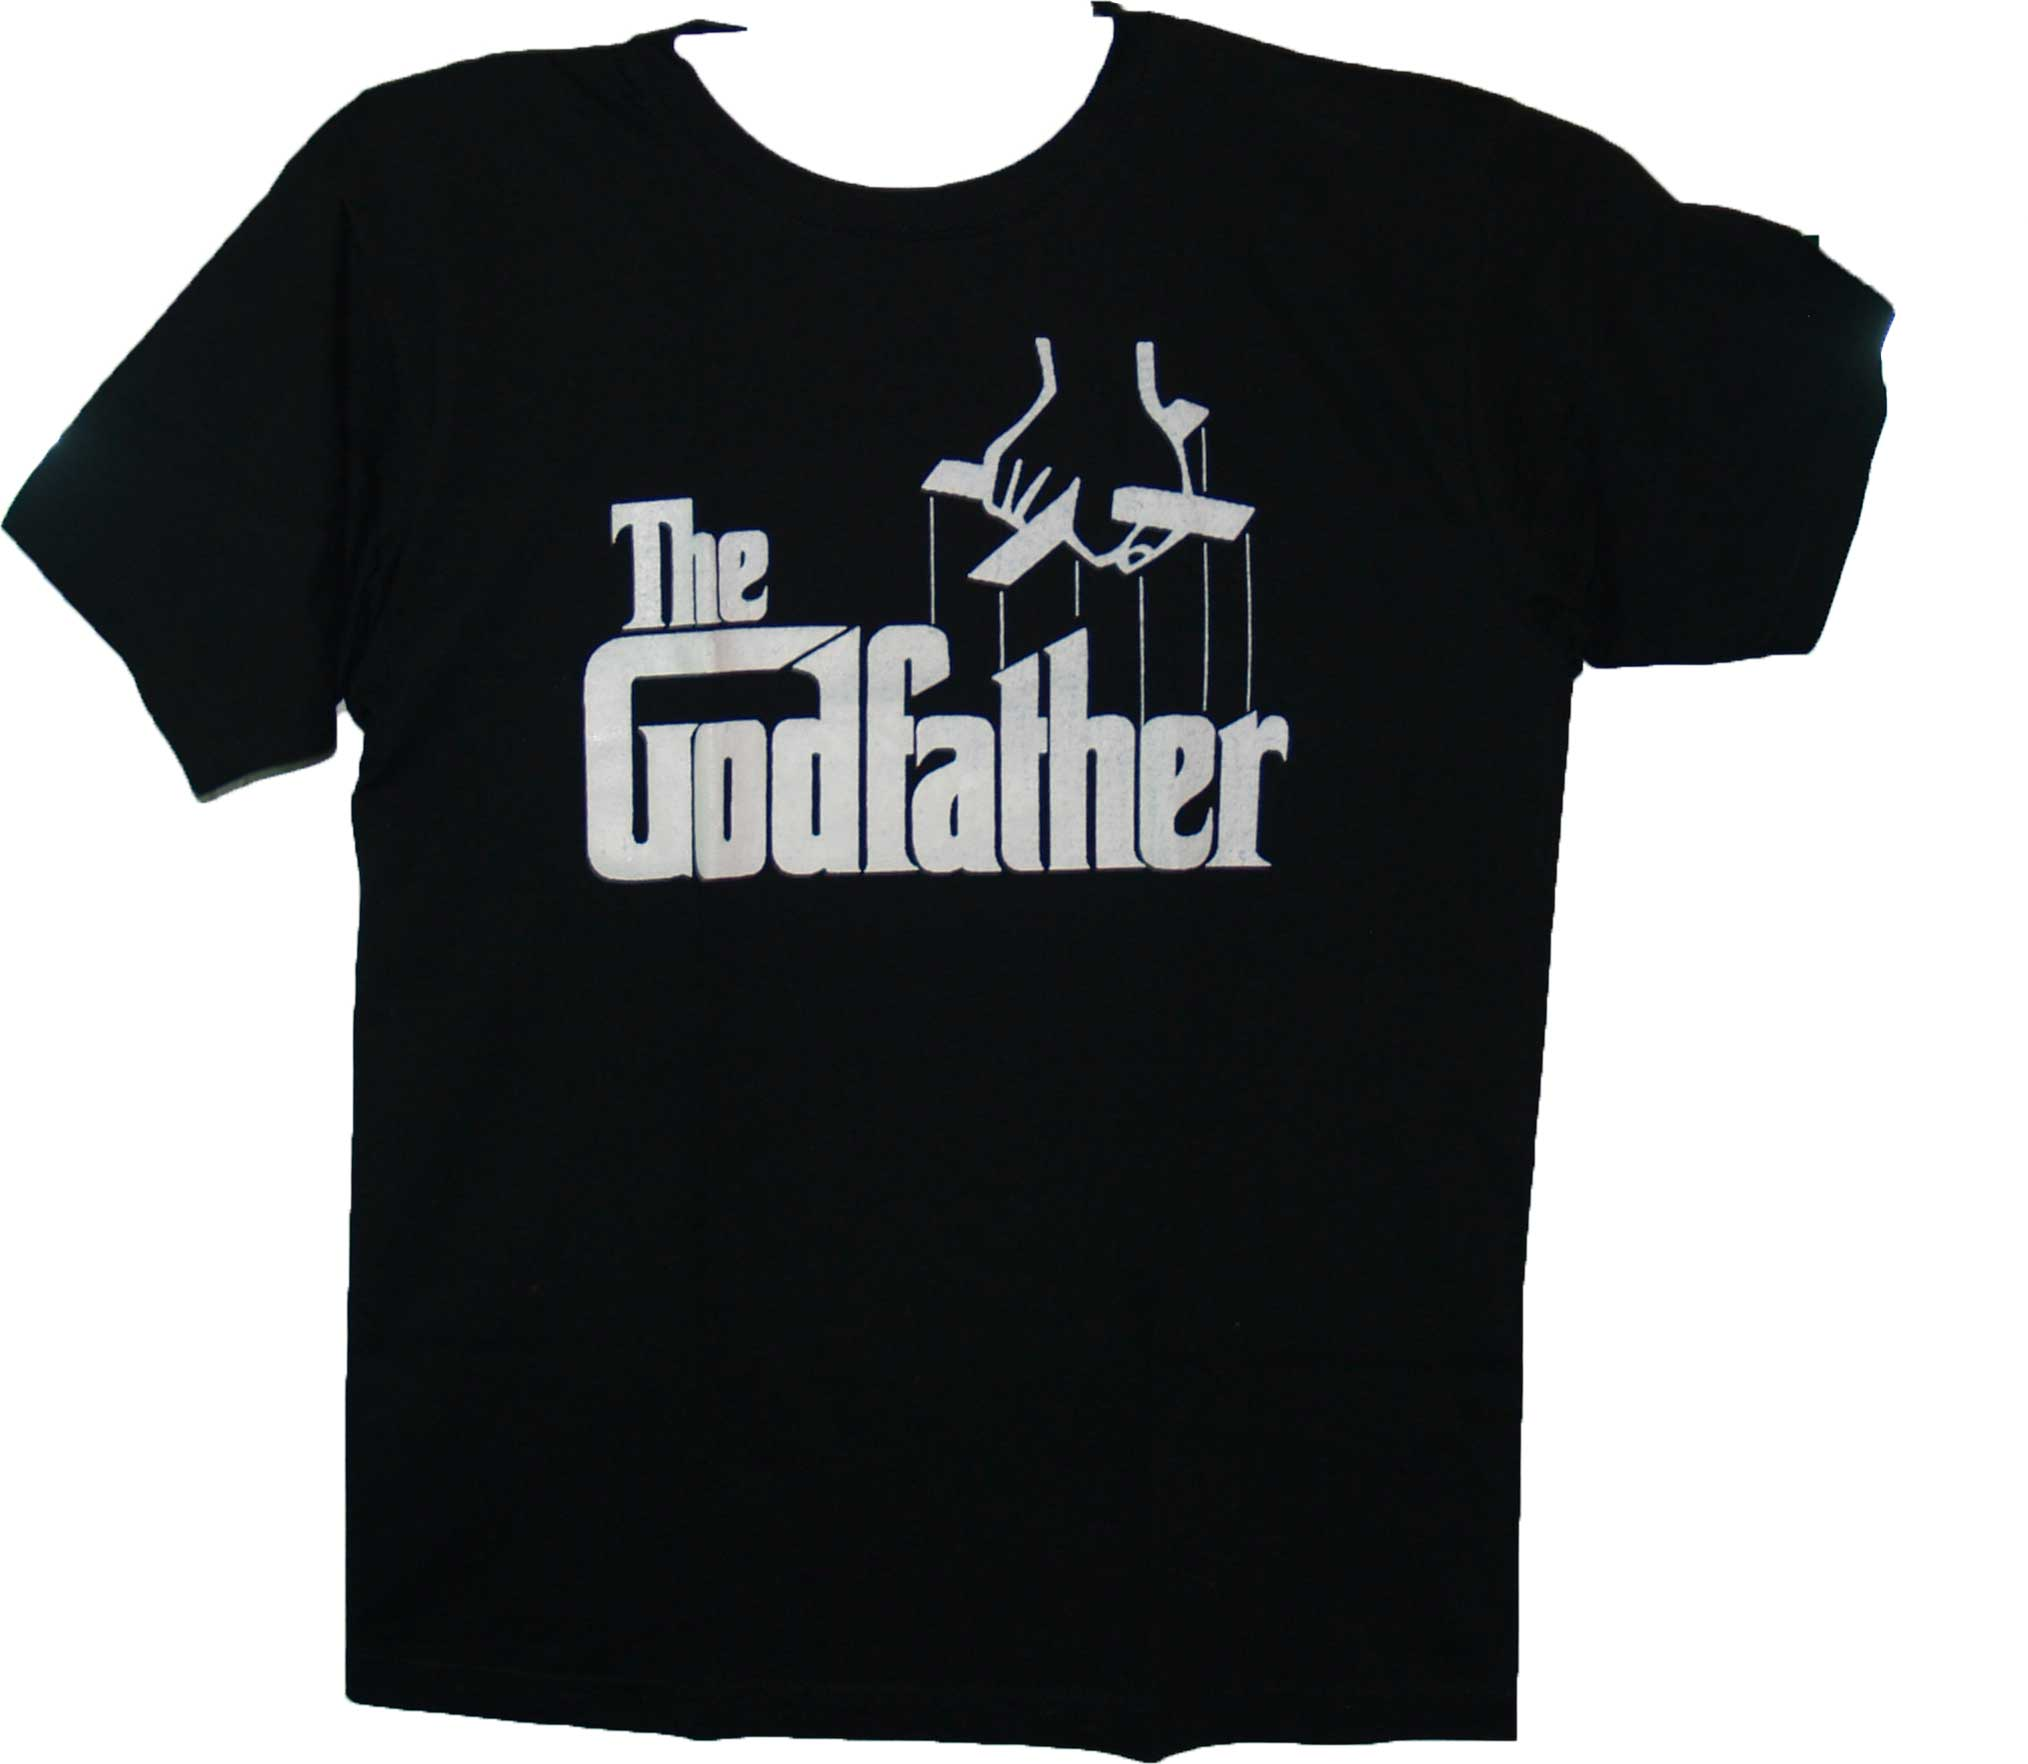 CAMISETA THE GODFATHER MARIONETA -TALLA M-